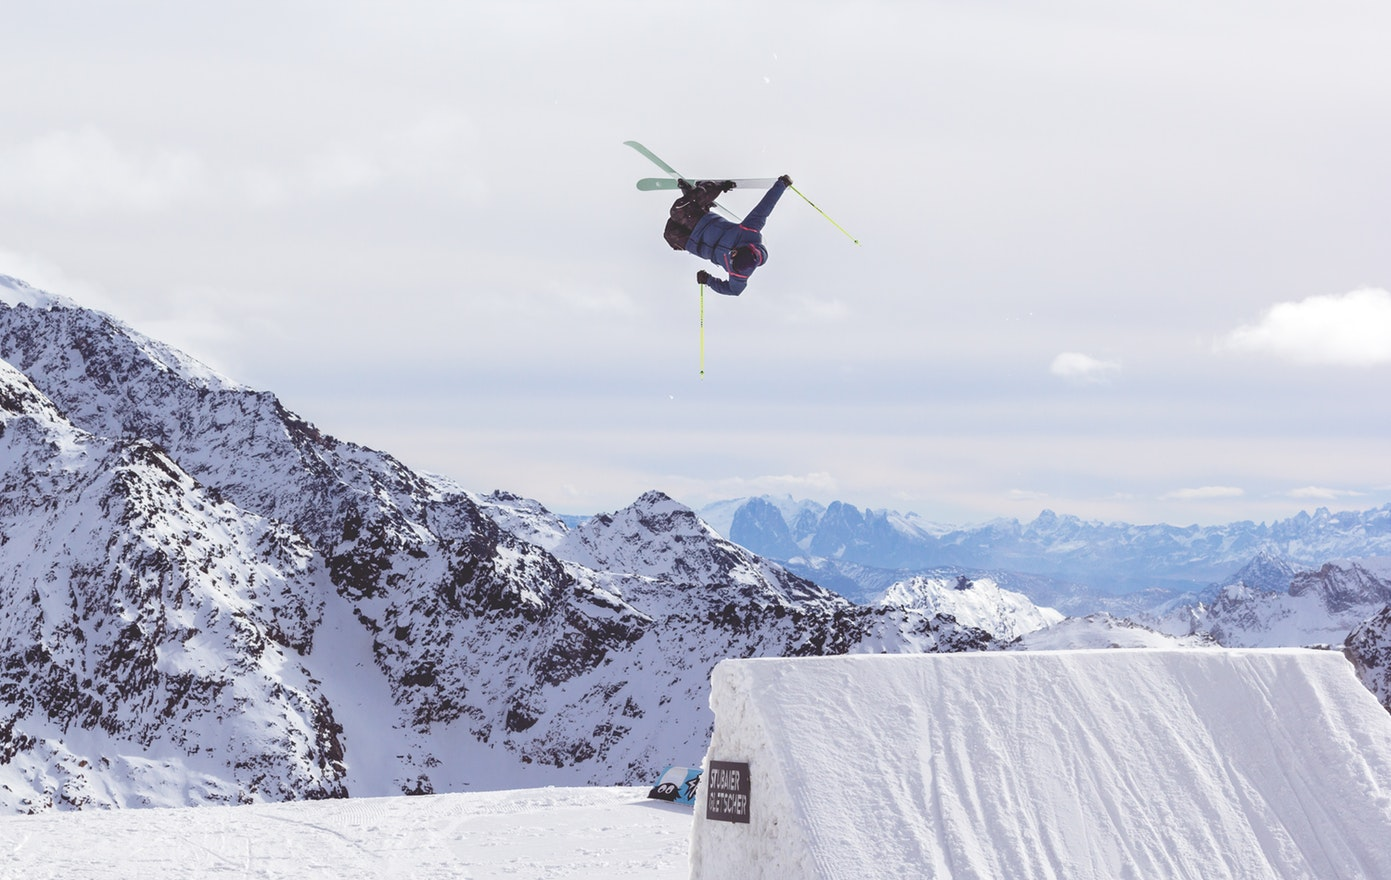 Top tips for preventing skiing injuries